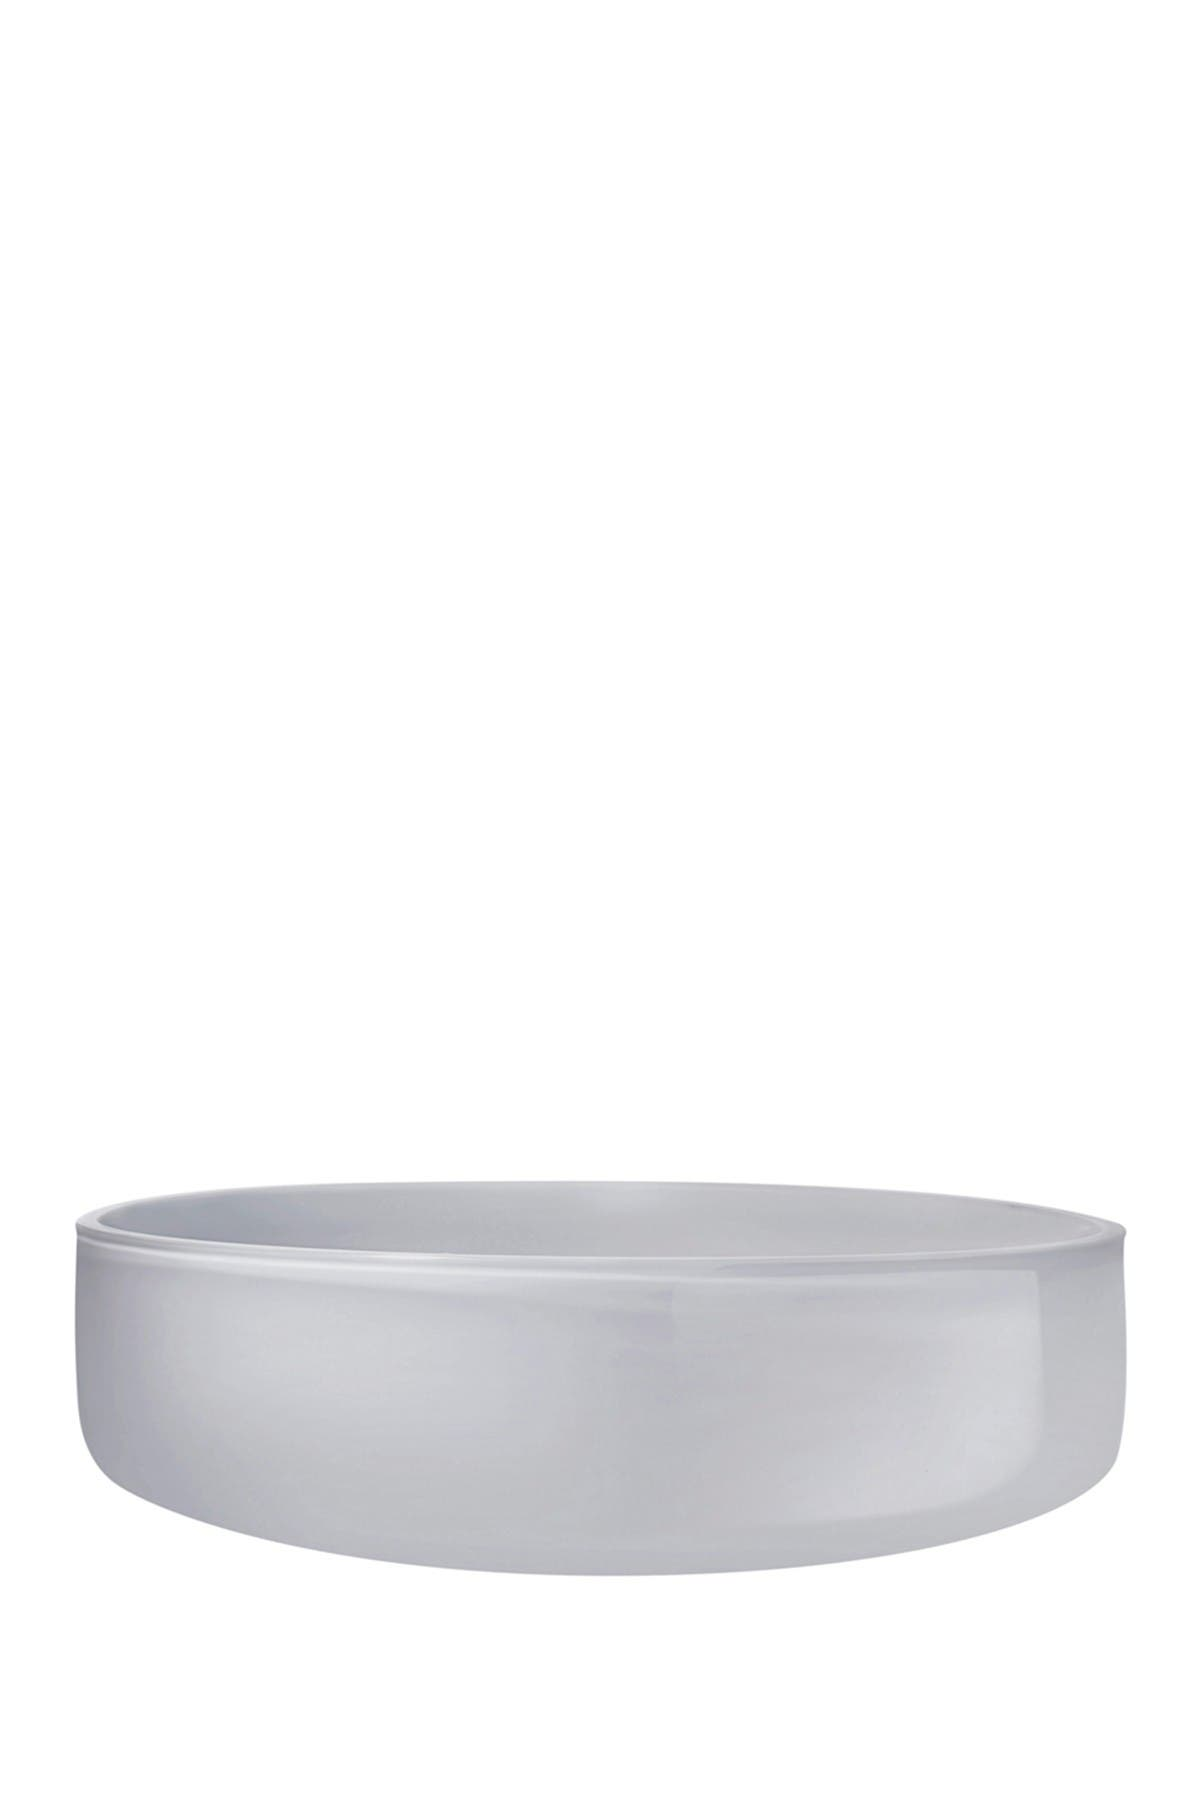 Image of Nude Glass Midnight Bowl - Small - Opal Grey